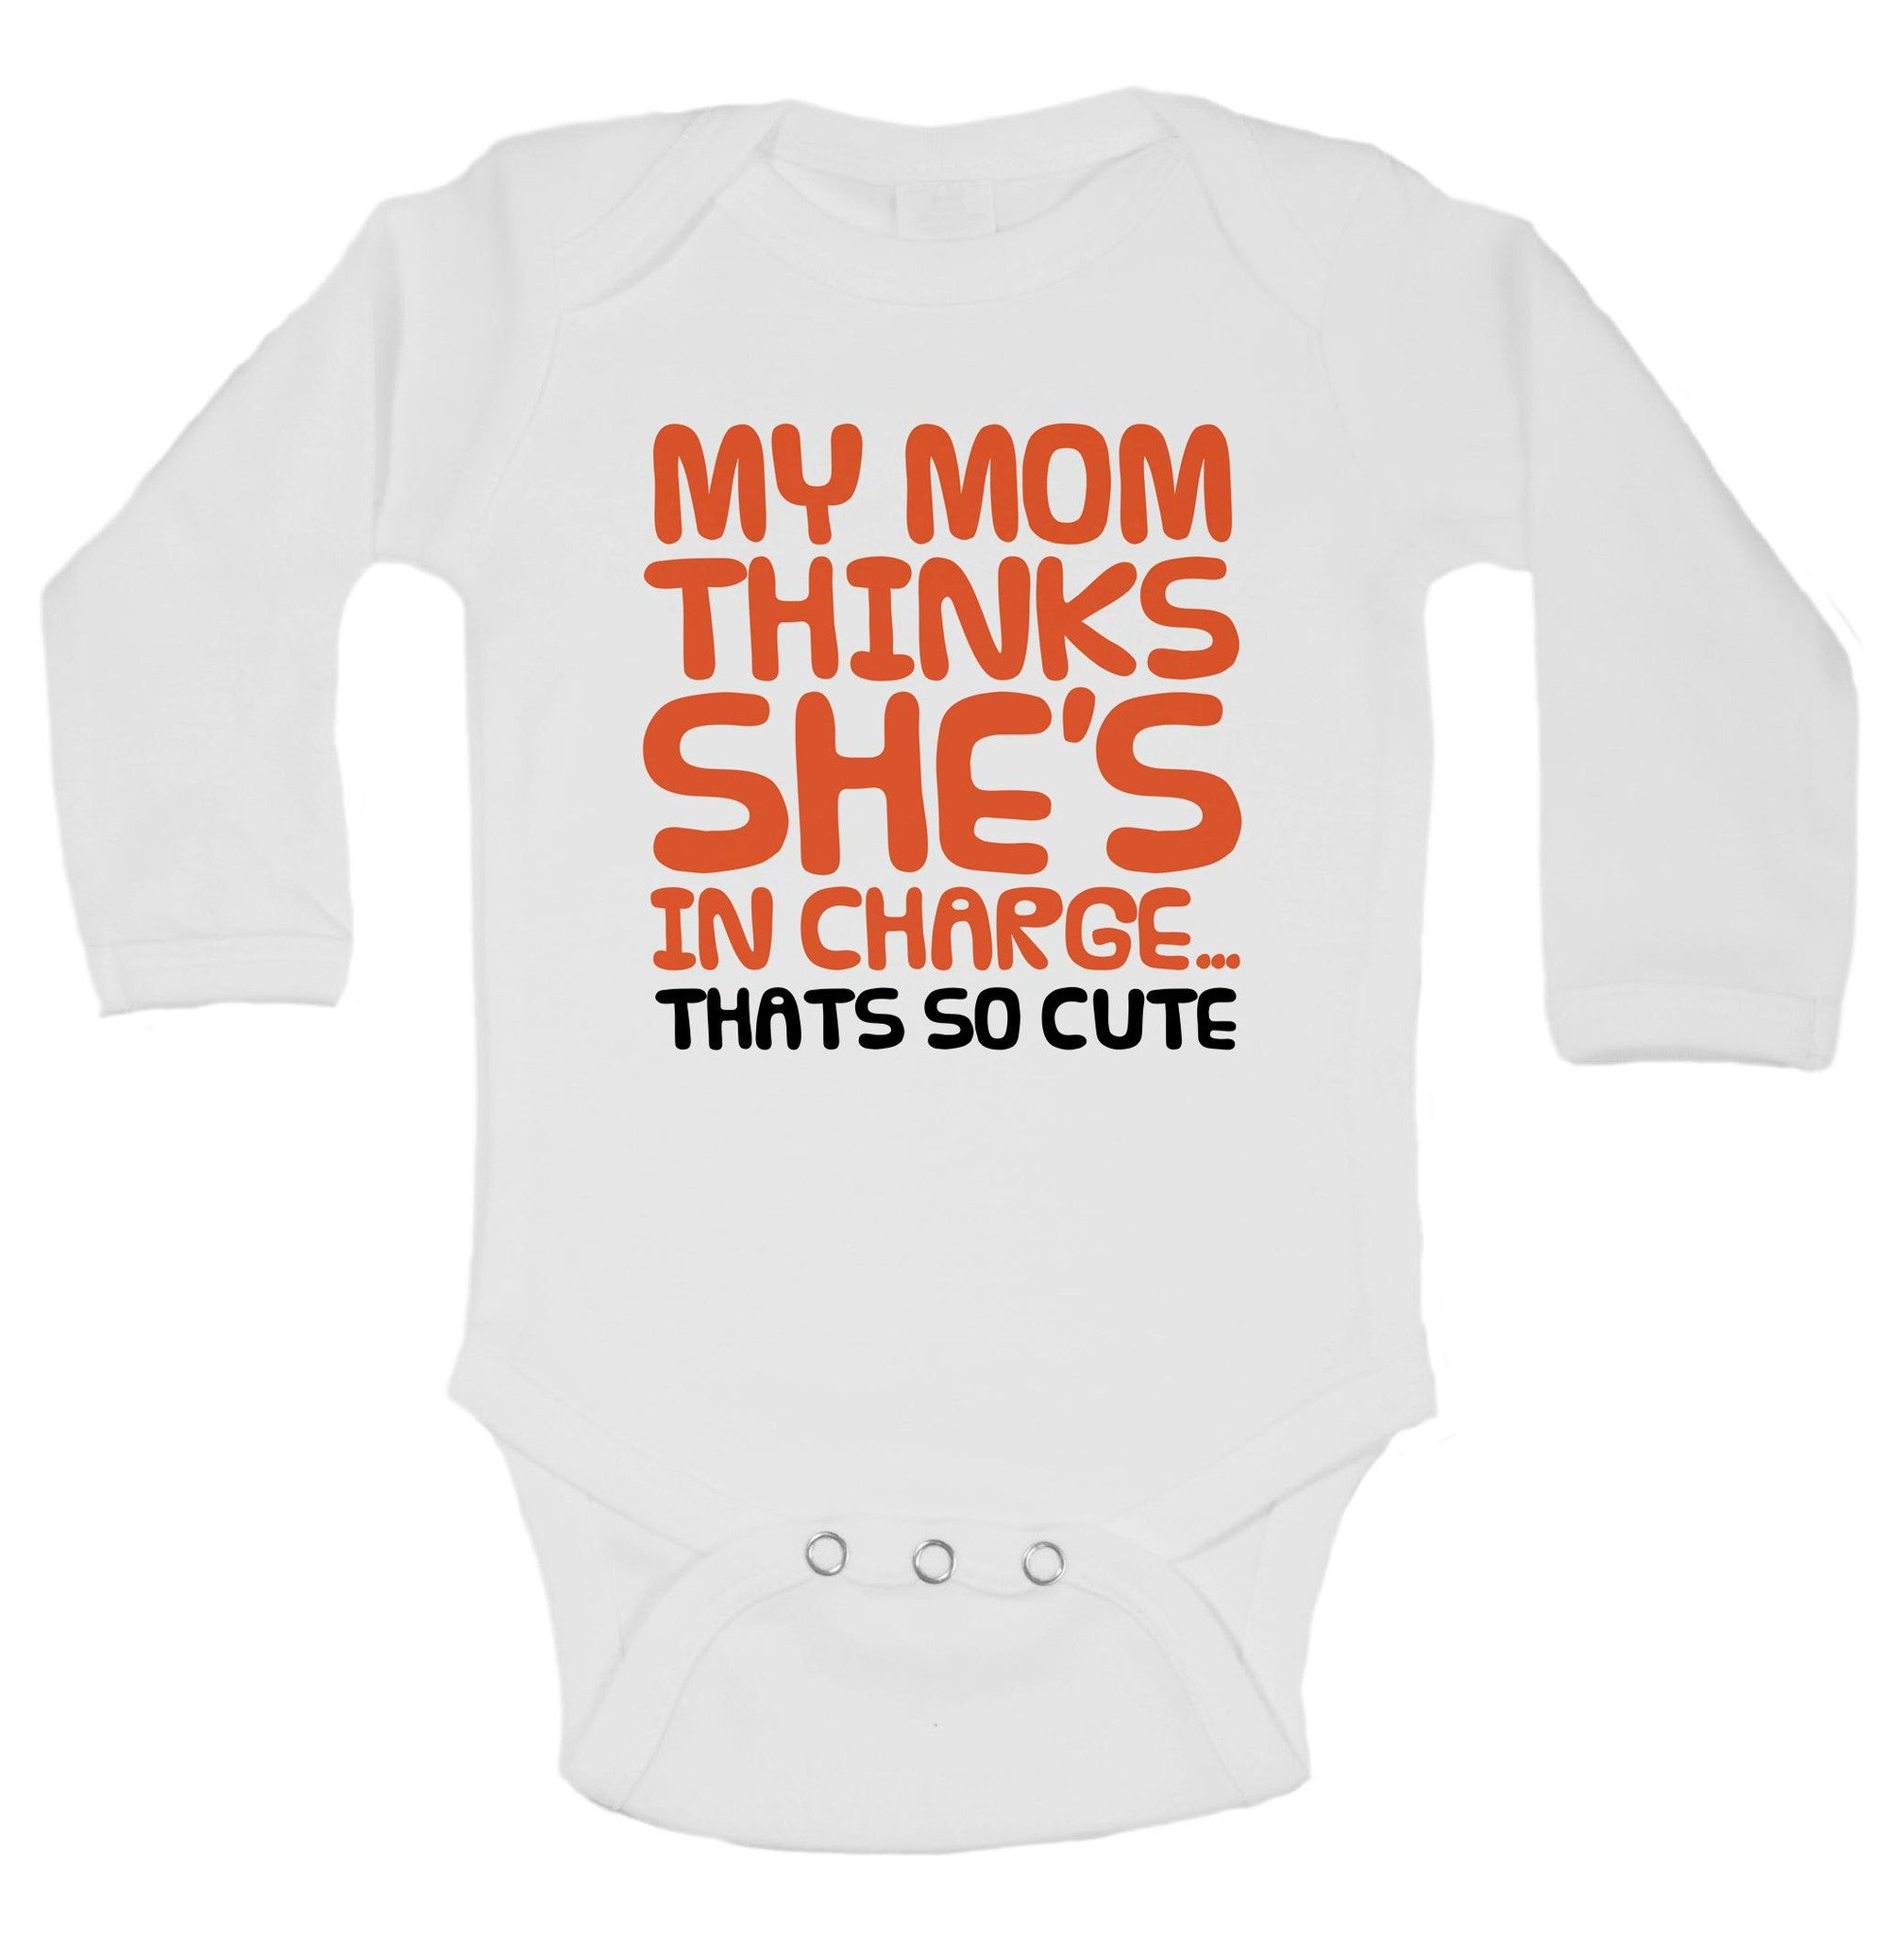 My Mom Thinks She's In Charge... Thats So Cute Funny Kids Onesie - B40 - Funny Shirts Tank Tops Burnouts and Triblends  - 1